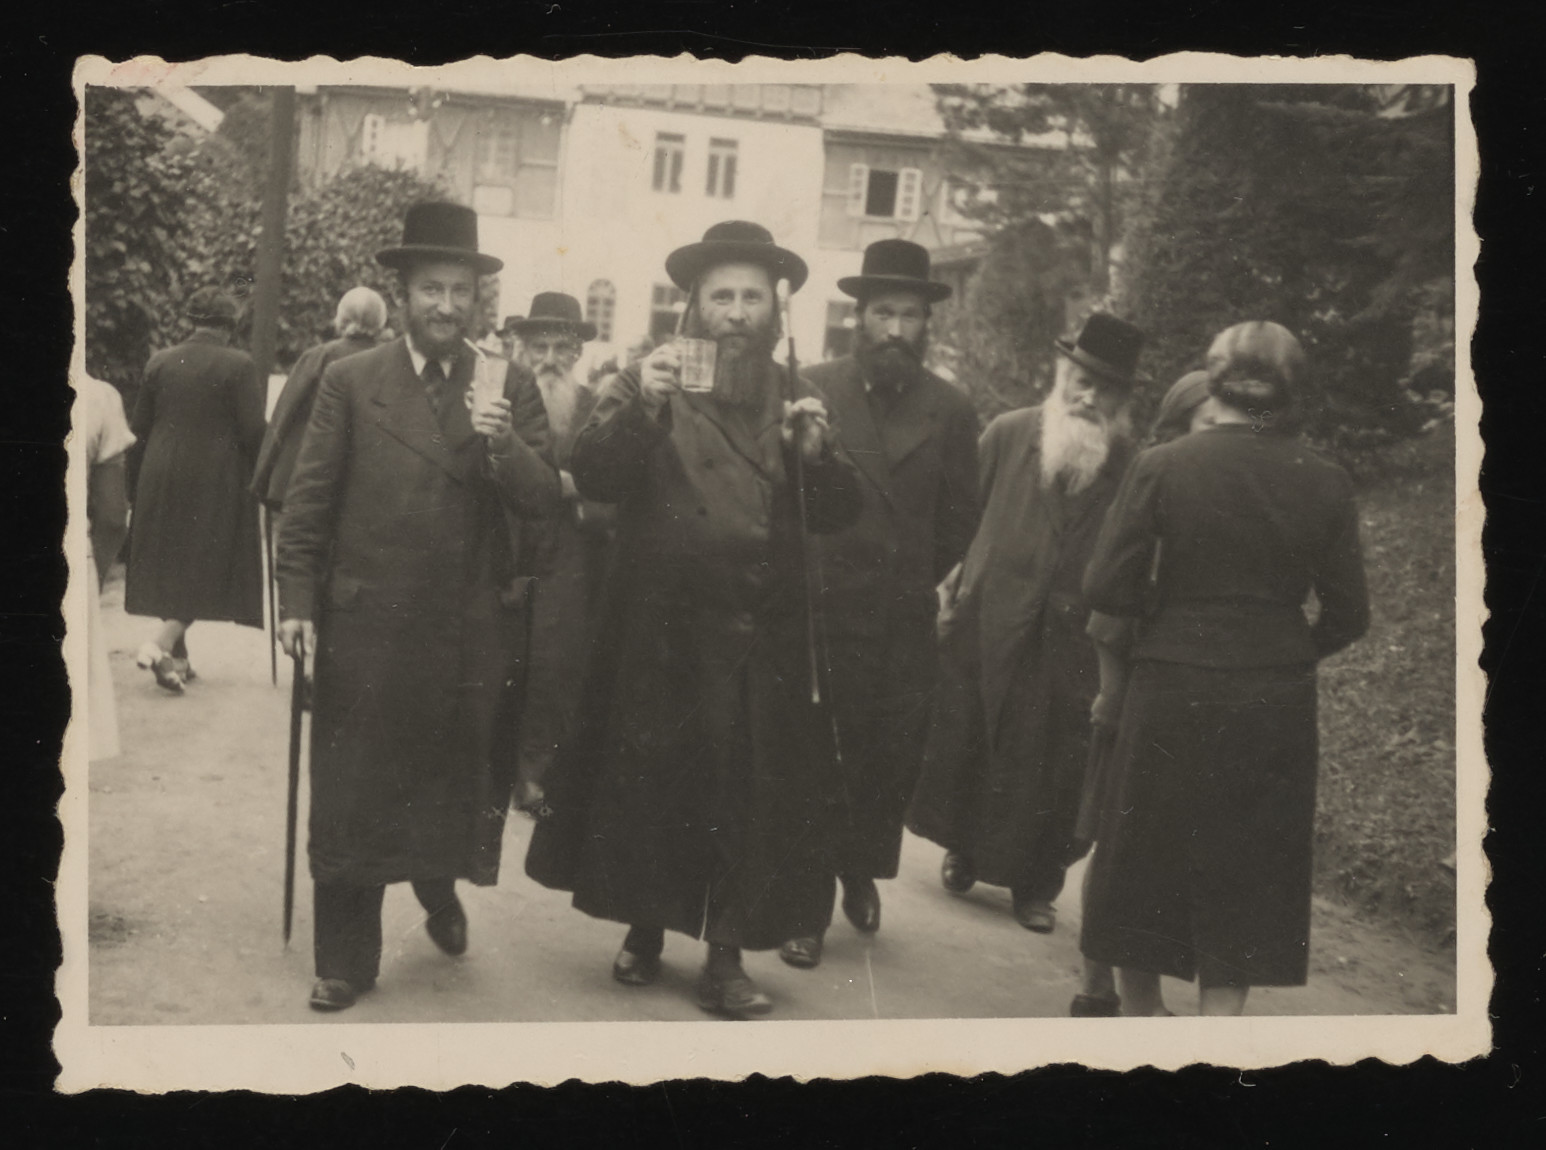 Religious Jews stroll along a street at a resort in the Tatra Mountains.    Pictured from right to left are Isak Saleschütz, Reuven Weinstein, Yisroel Spira (a cousin of Shaye David Lische), and Shaye David Lische.